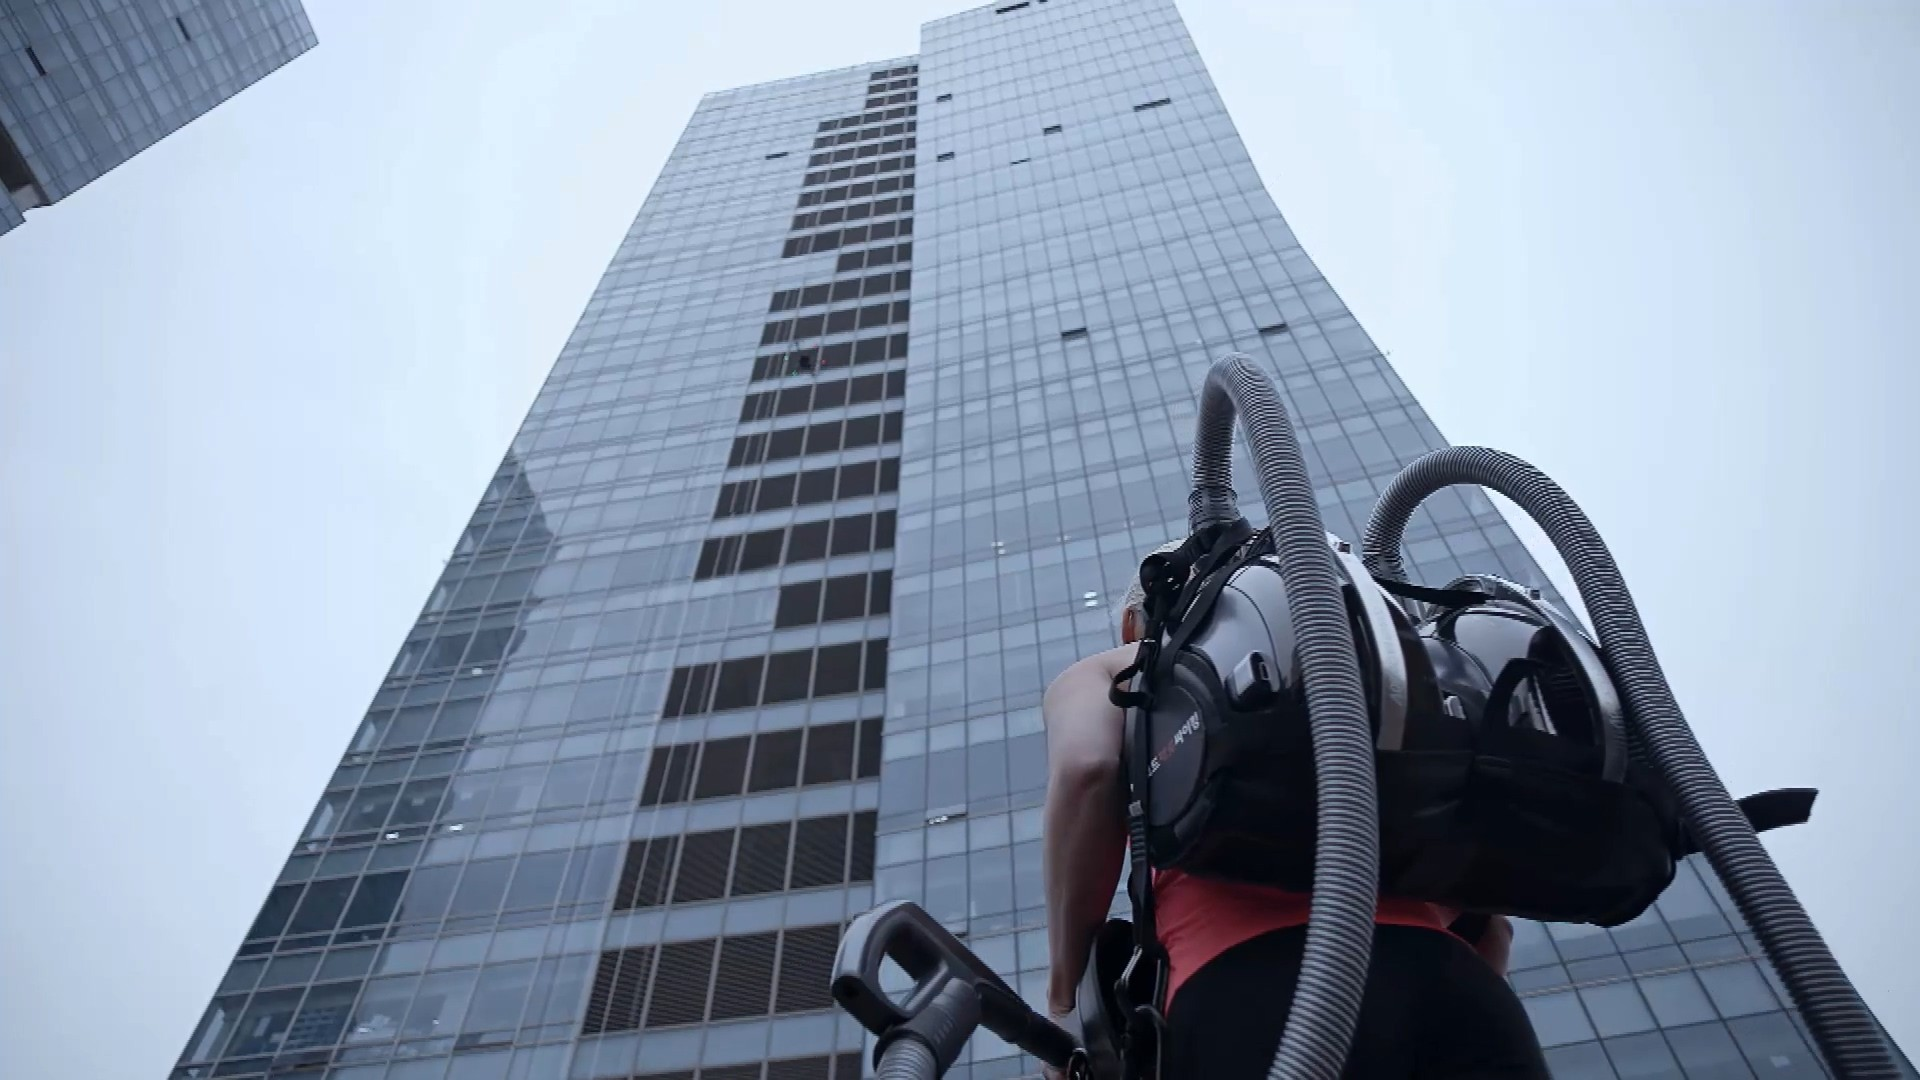 Professional rock climber Sierra Blair-Coyle with LG CordZero™ canister vacuum standing in front of 33-story office tower